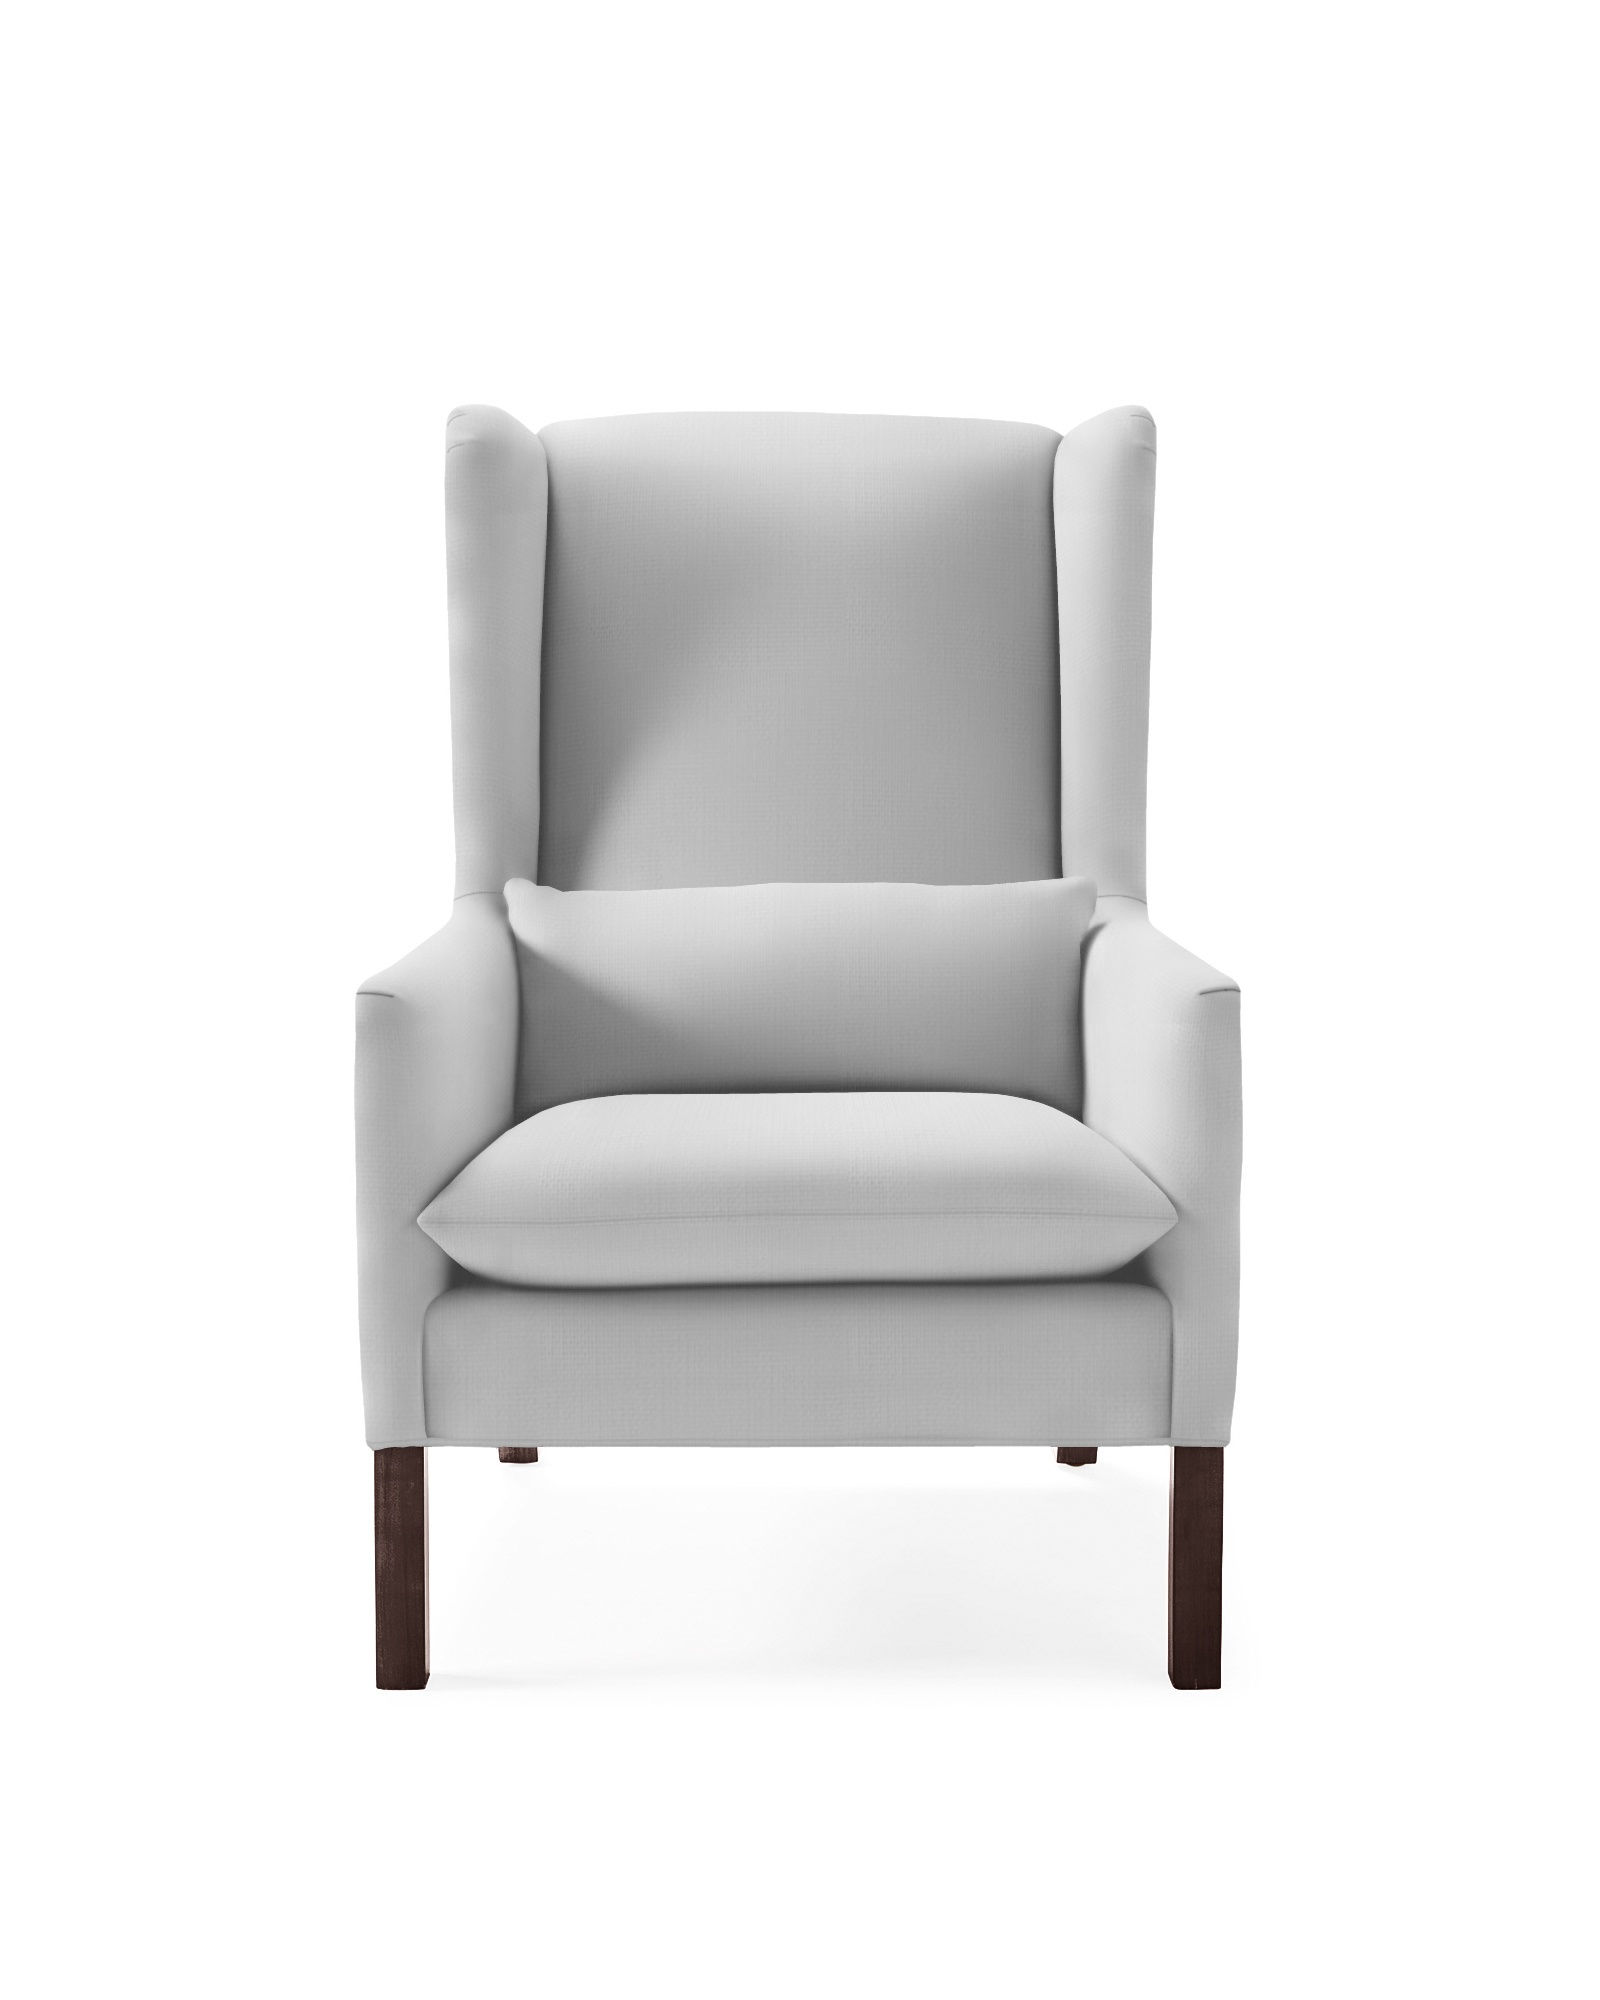 Sussex Wing Back Chair,